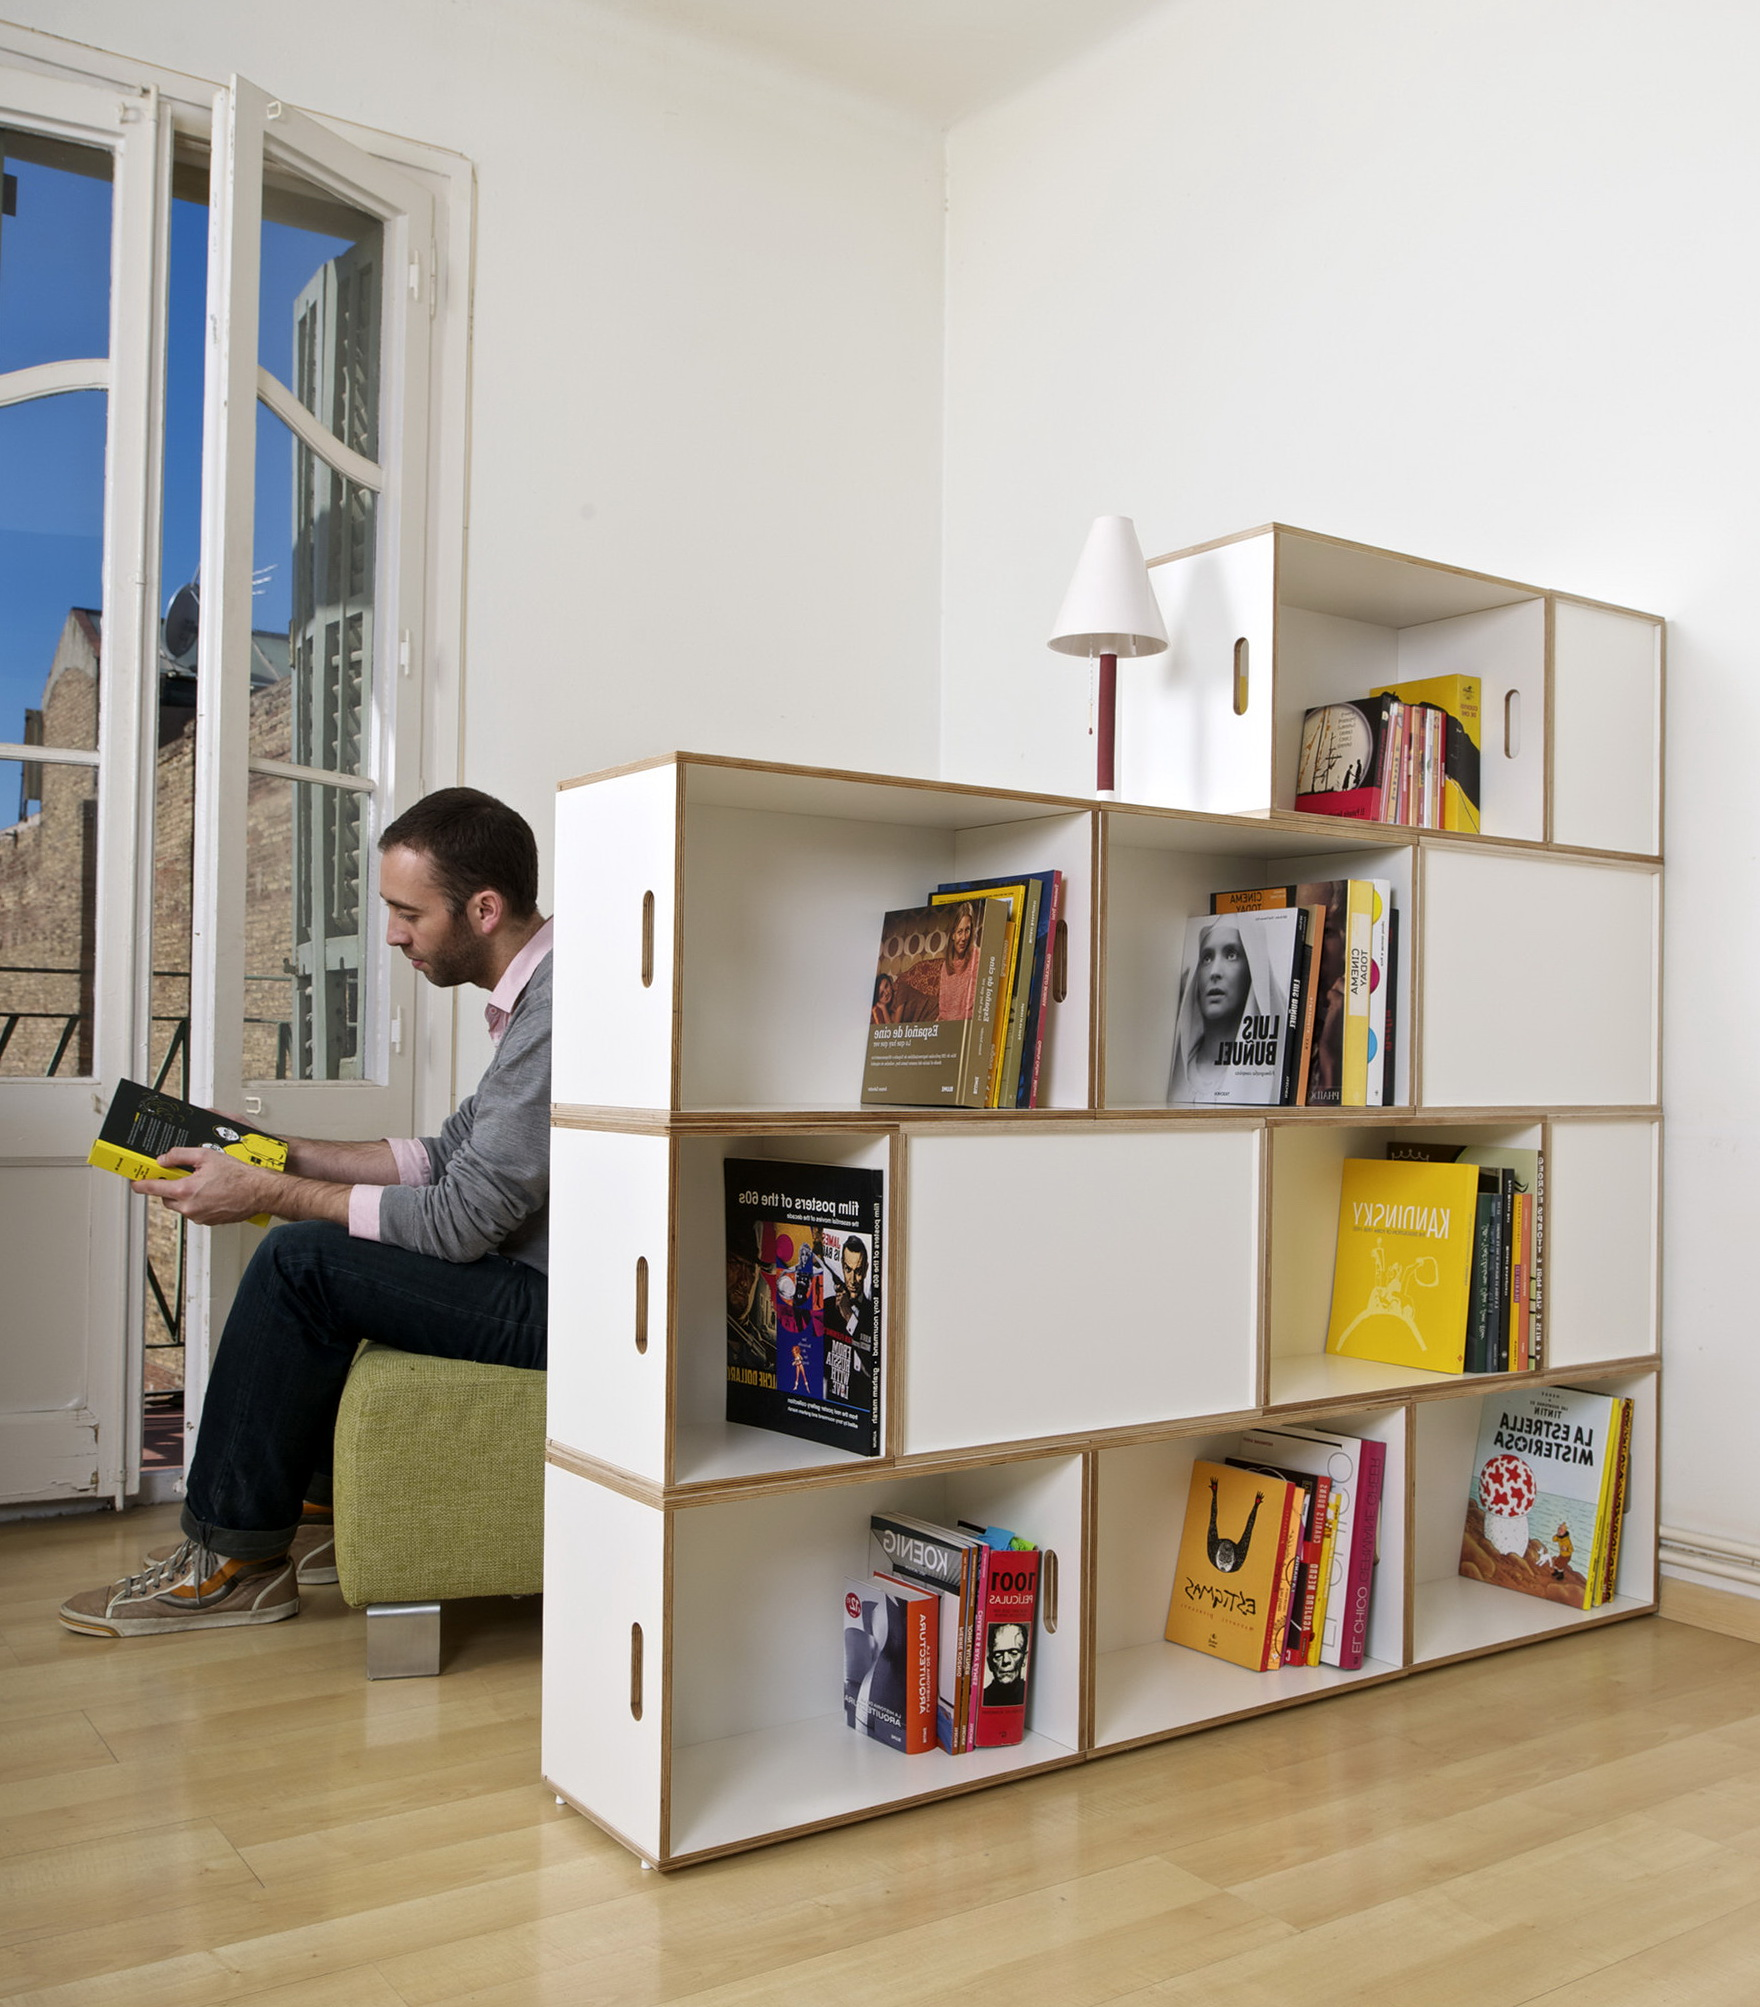 Permalink to Bookshelf Room Divider Apartment Therapy